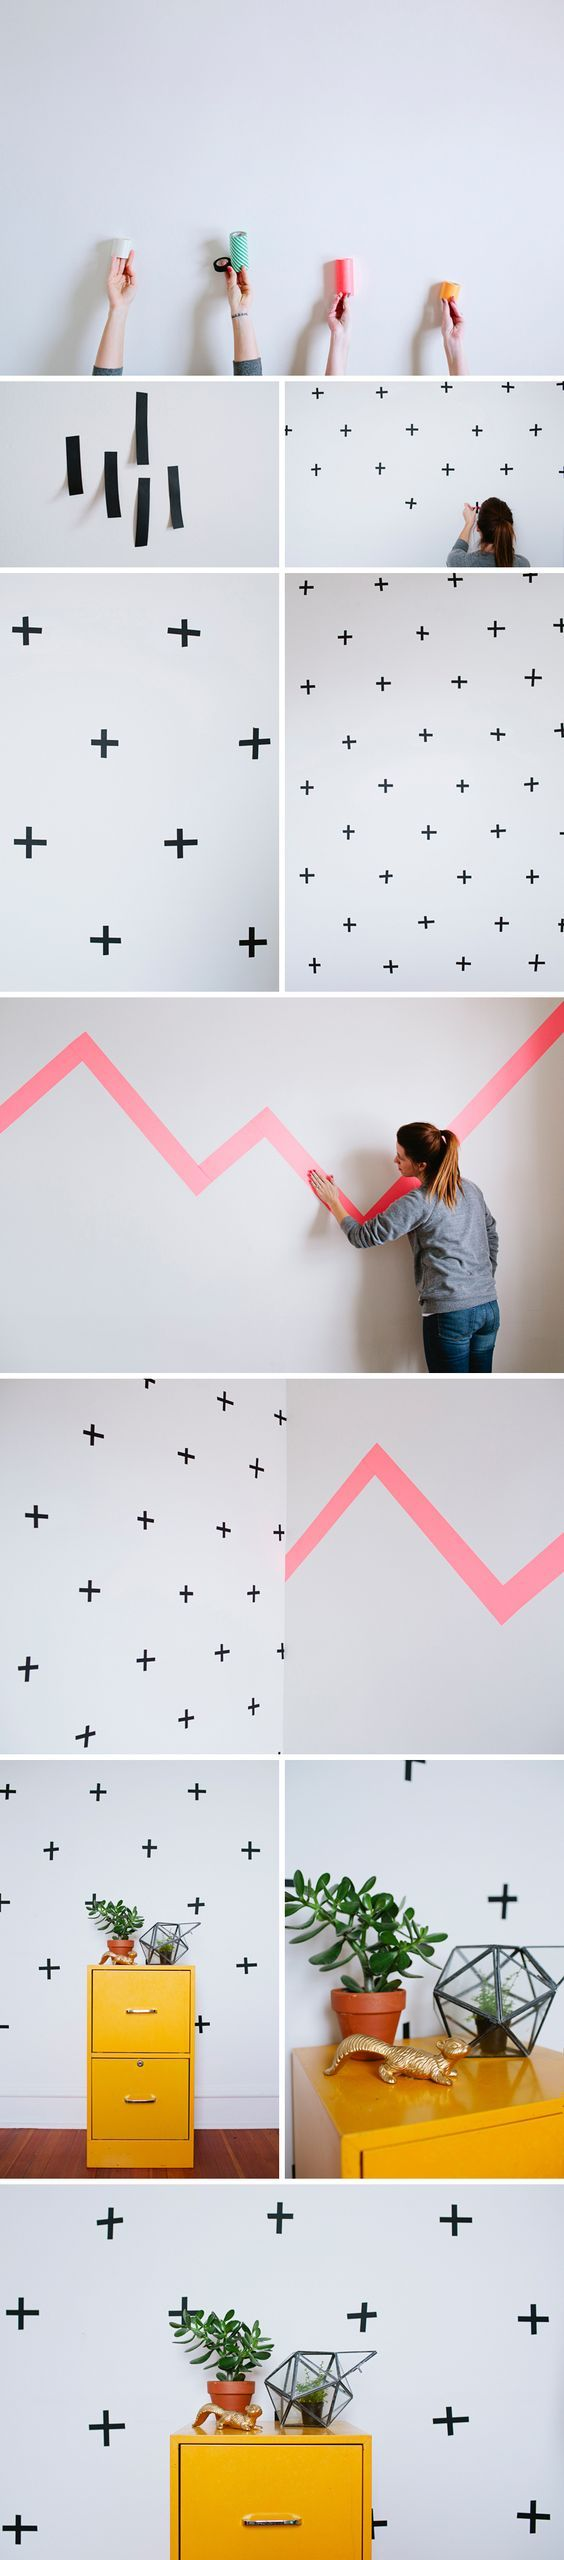 This DIY is super easy and super awesome. All you need is some Washi Tape and a wall and you are good to go! We sell 15mm, 50mm, and 100mm at the store in a crazy amount of colors and patterns! The possibilities are endless! Supply List: + washi tape + empty wall! 1. Clear out and wipe down the wall you'd like to use. I'd suggest testing a piece of tape on your wall prior to taping your entire wall. Sometimes certain colors don't stick to certain walls. You won't know until you try it. 2....